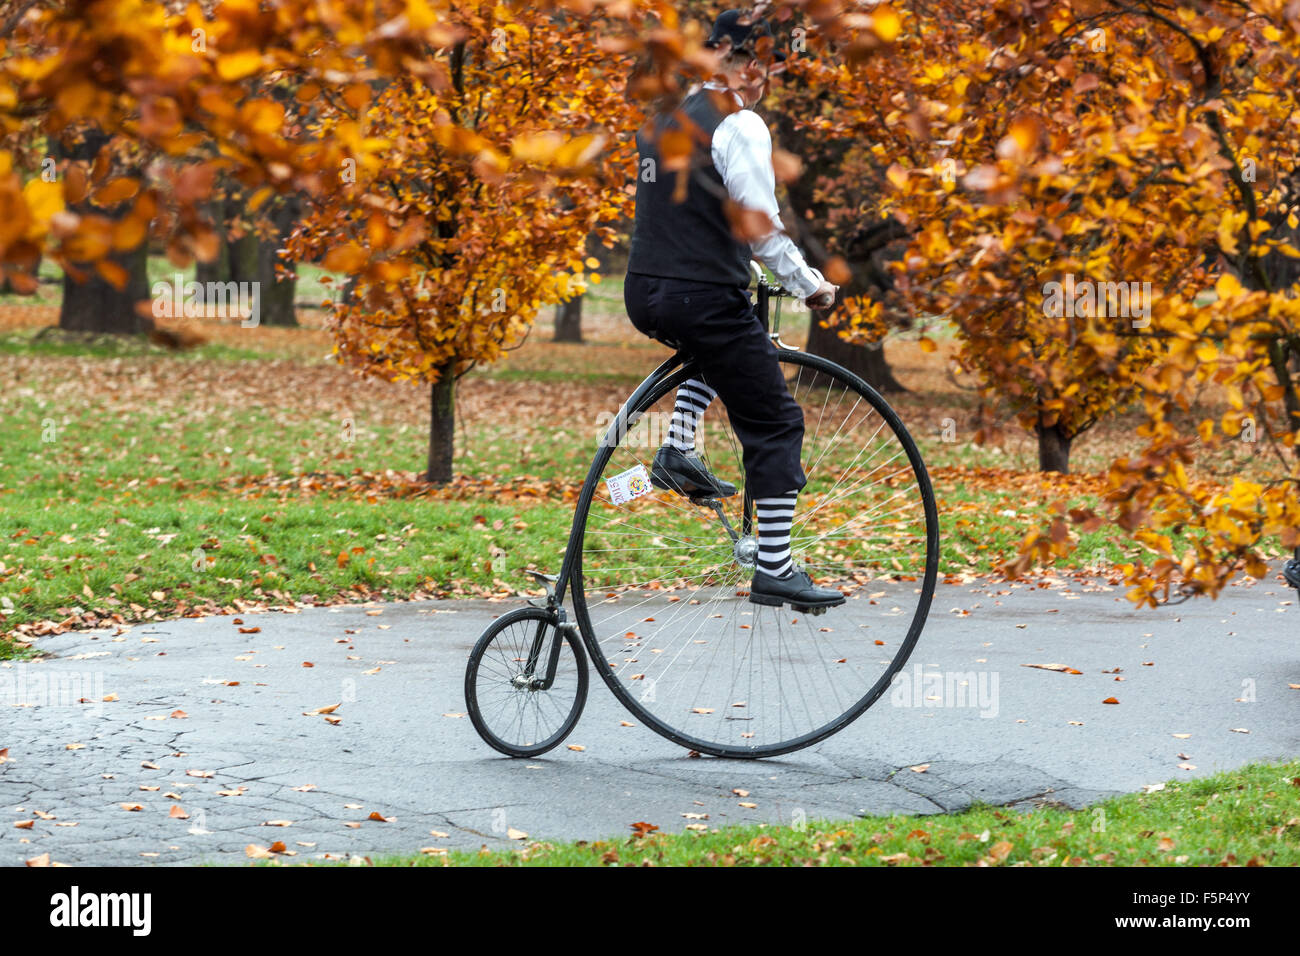 Prague Autumn, Traditional Penny Farthing bicycle race. Participants dressed in period costumes, Prague Letna Park, - Stock Image